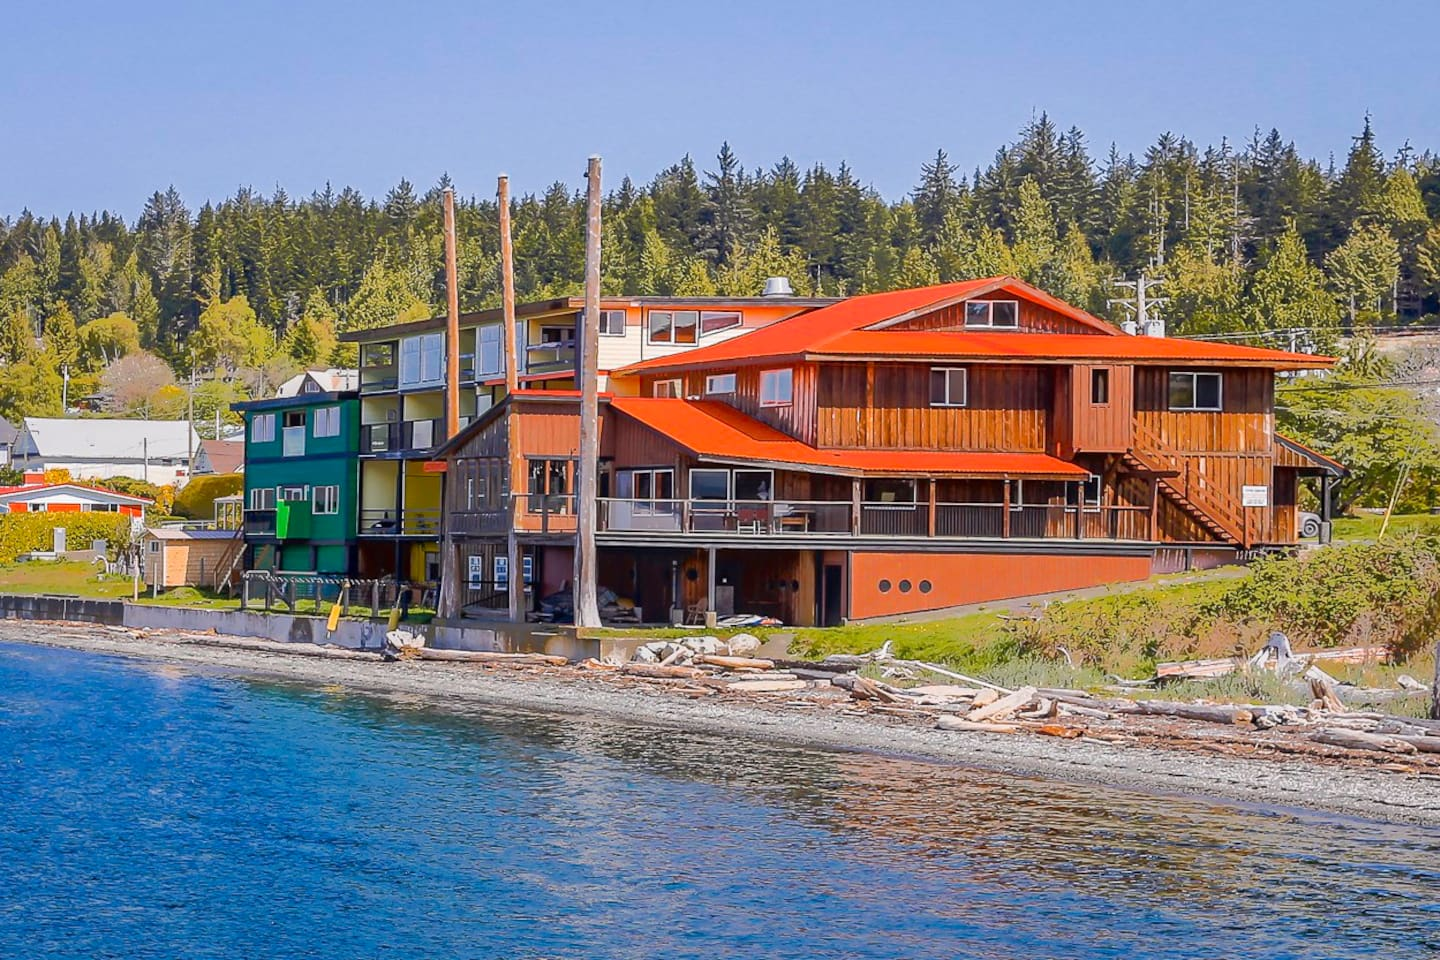 The Oceanfront Hotel has 16 rooms- 2 wheelchair friendly on the main floor. Many rooms are pet friendly.   There is great kayaking  & miles of hiking trails through the forest and along the beach.  Enjoy a fabulous sunset from your private deck.